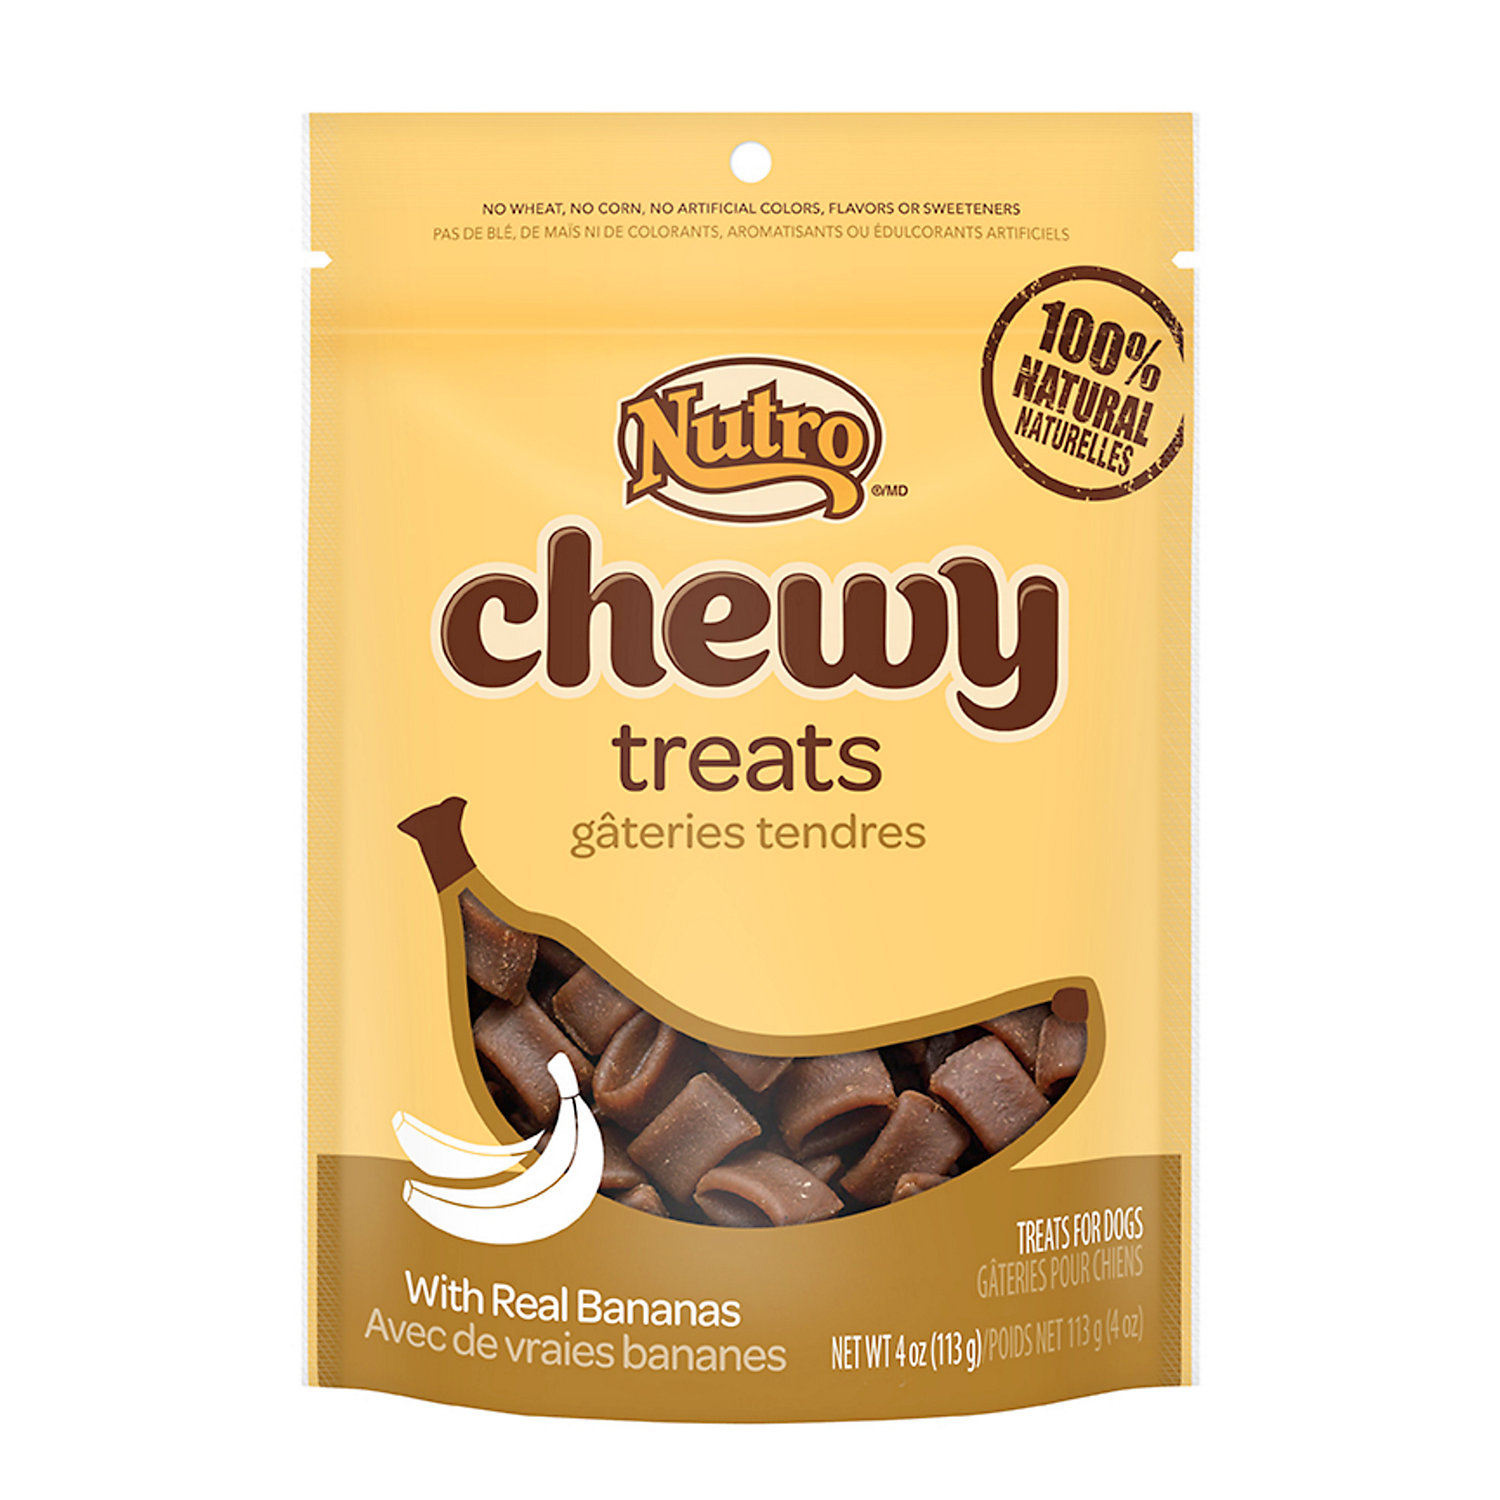 Nutro Chewy Dog Treats With Real Bananas 4 Oz.